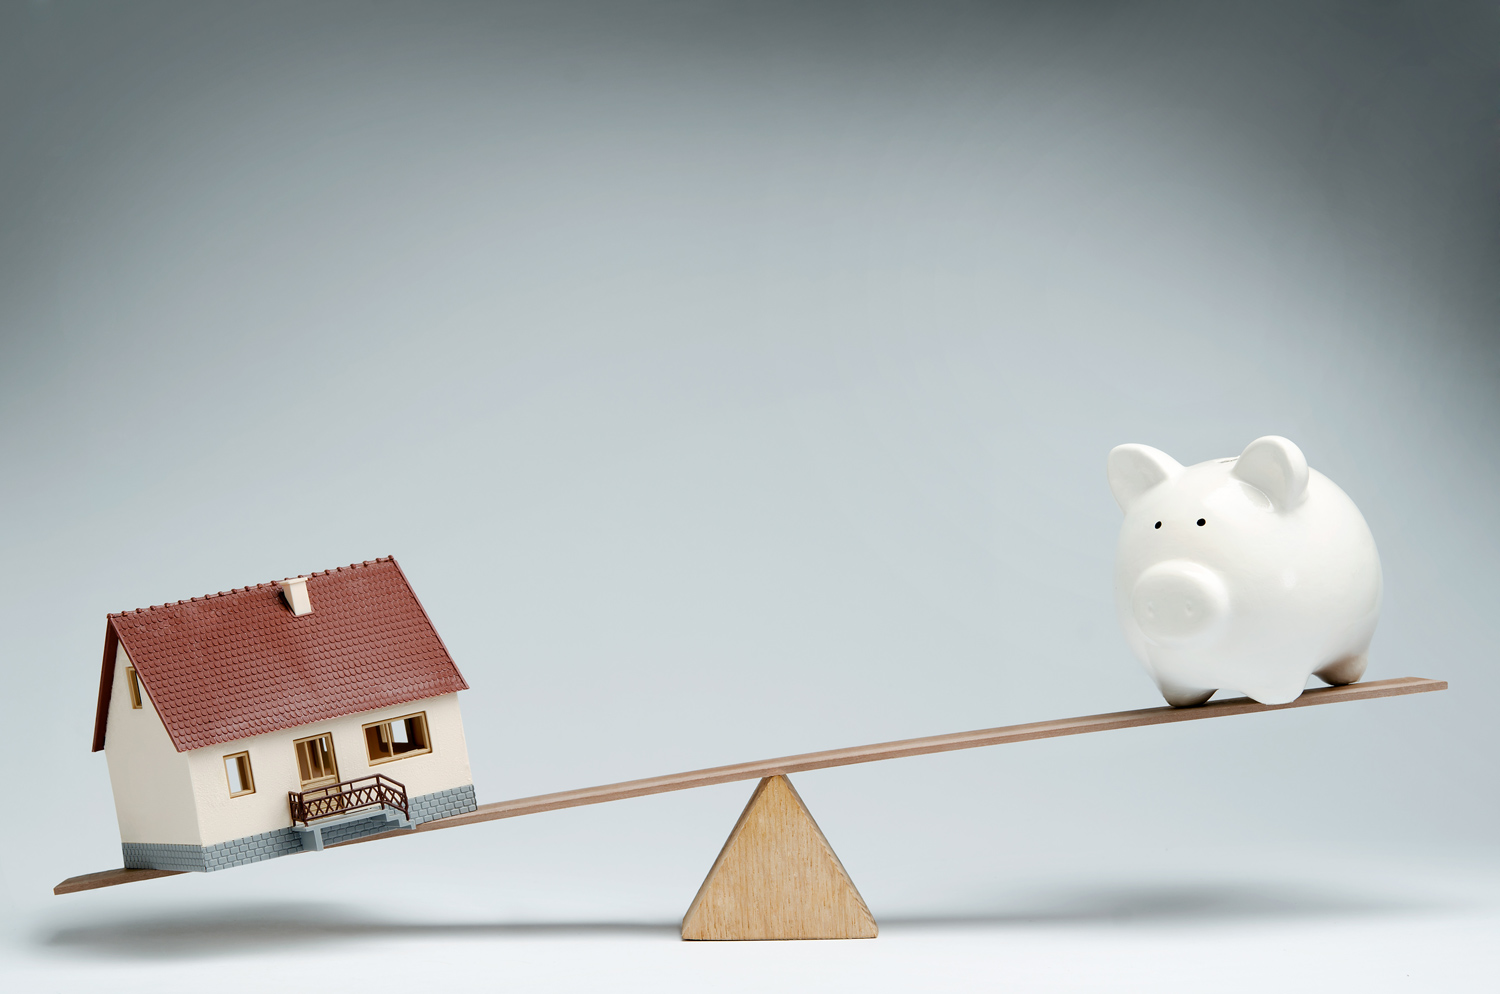 house-piggy-bank-see-saw-abc-debt-solutions.jpg